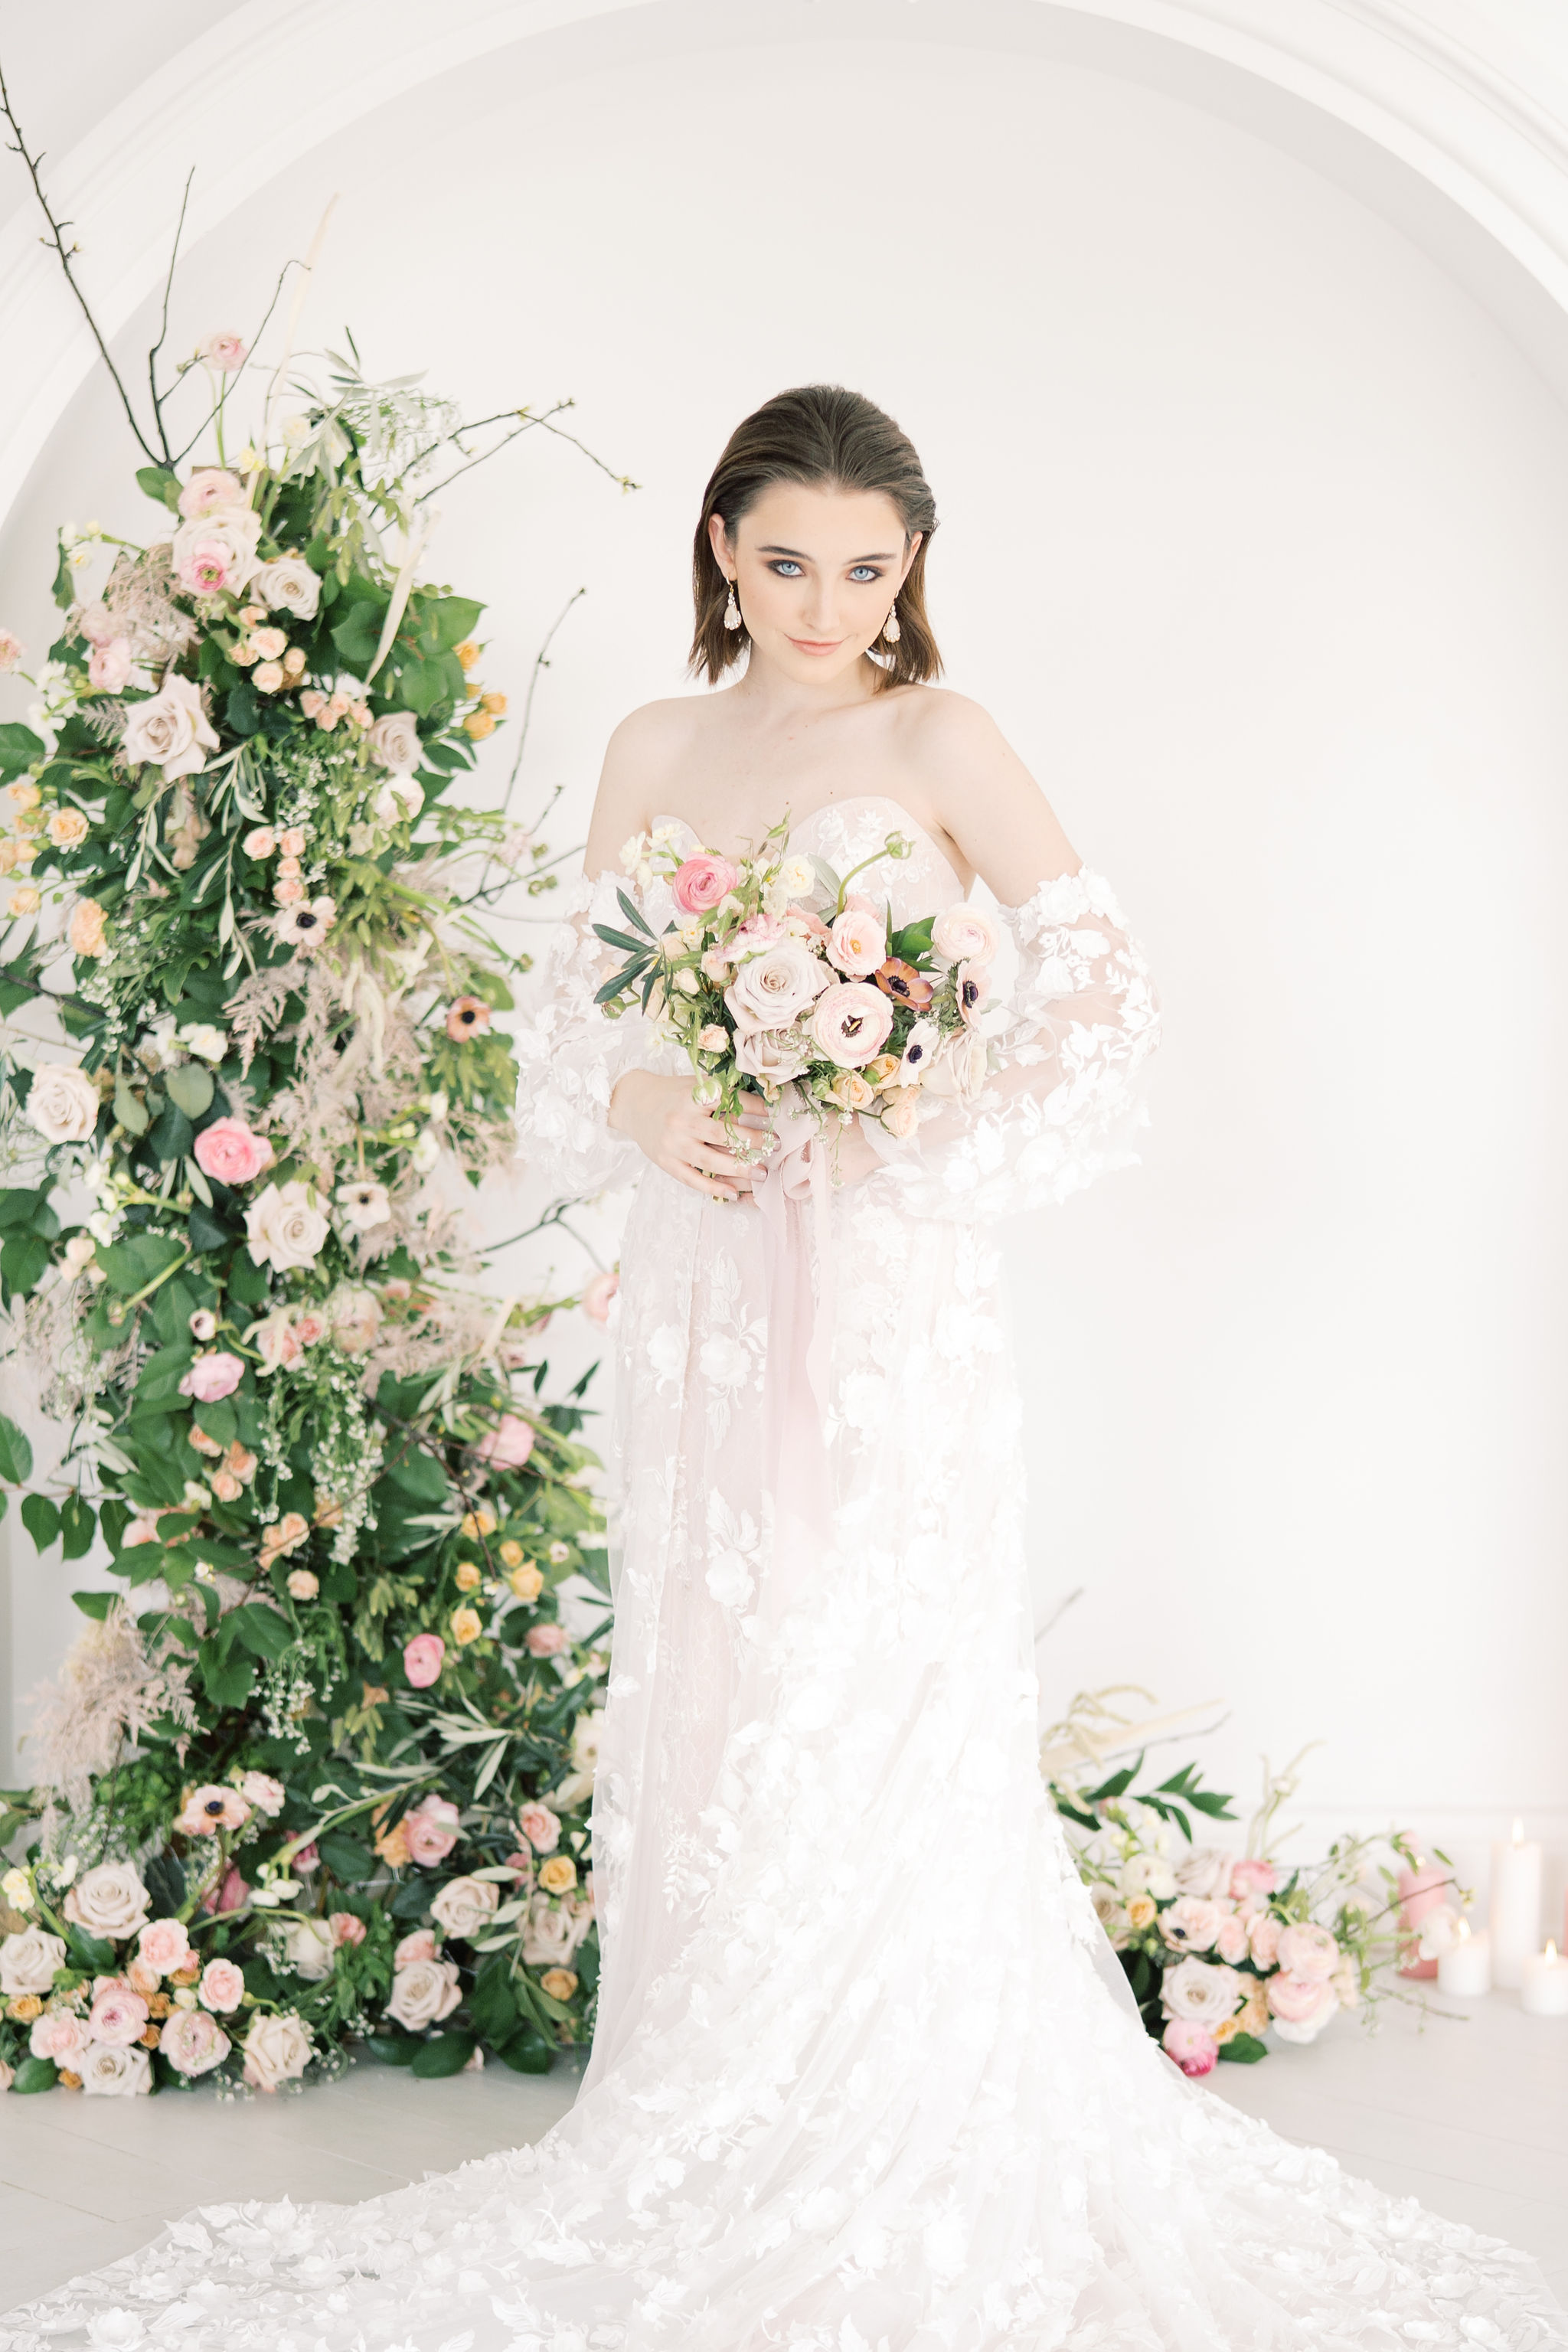 Bridal Portrait with Floral Arch